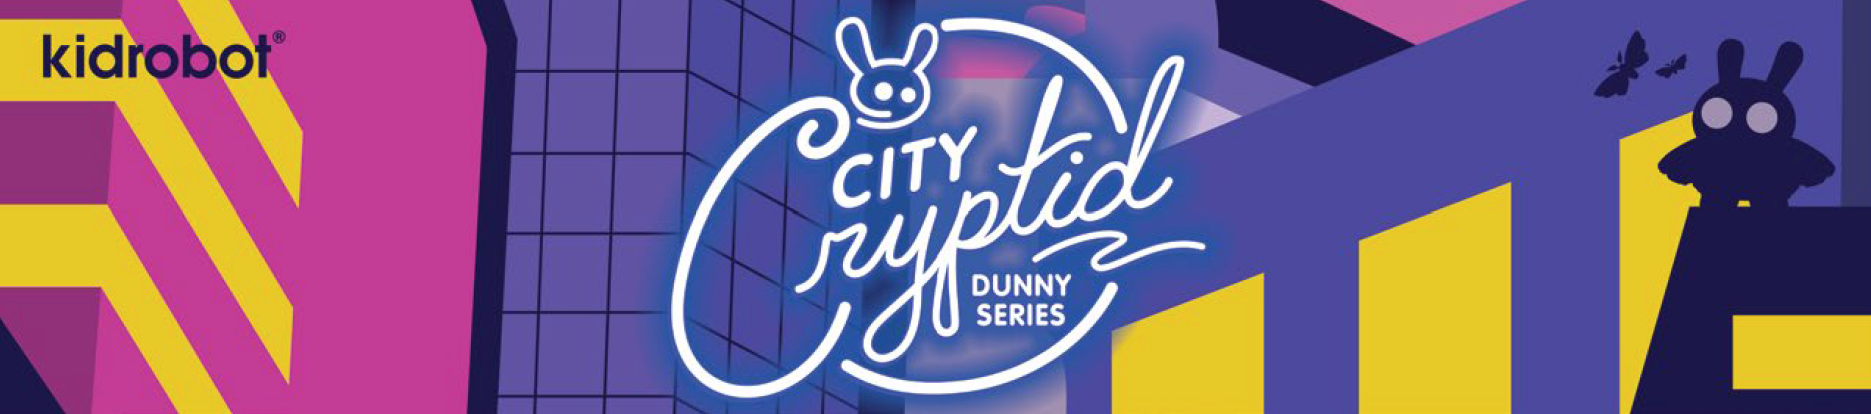 Artist Chris Lee Dunny for City Cryptid Dunny Series by Kdirobot